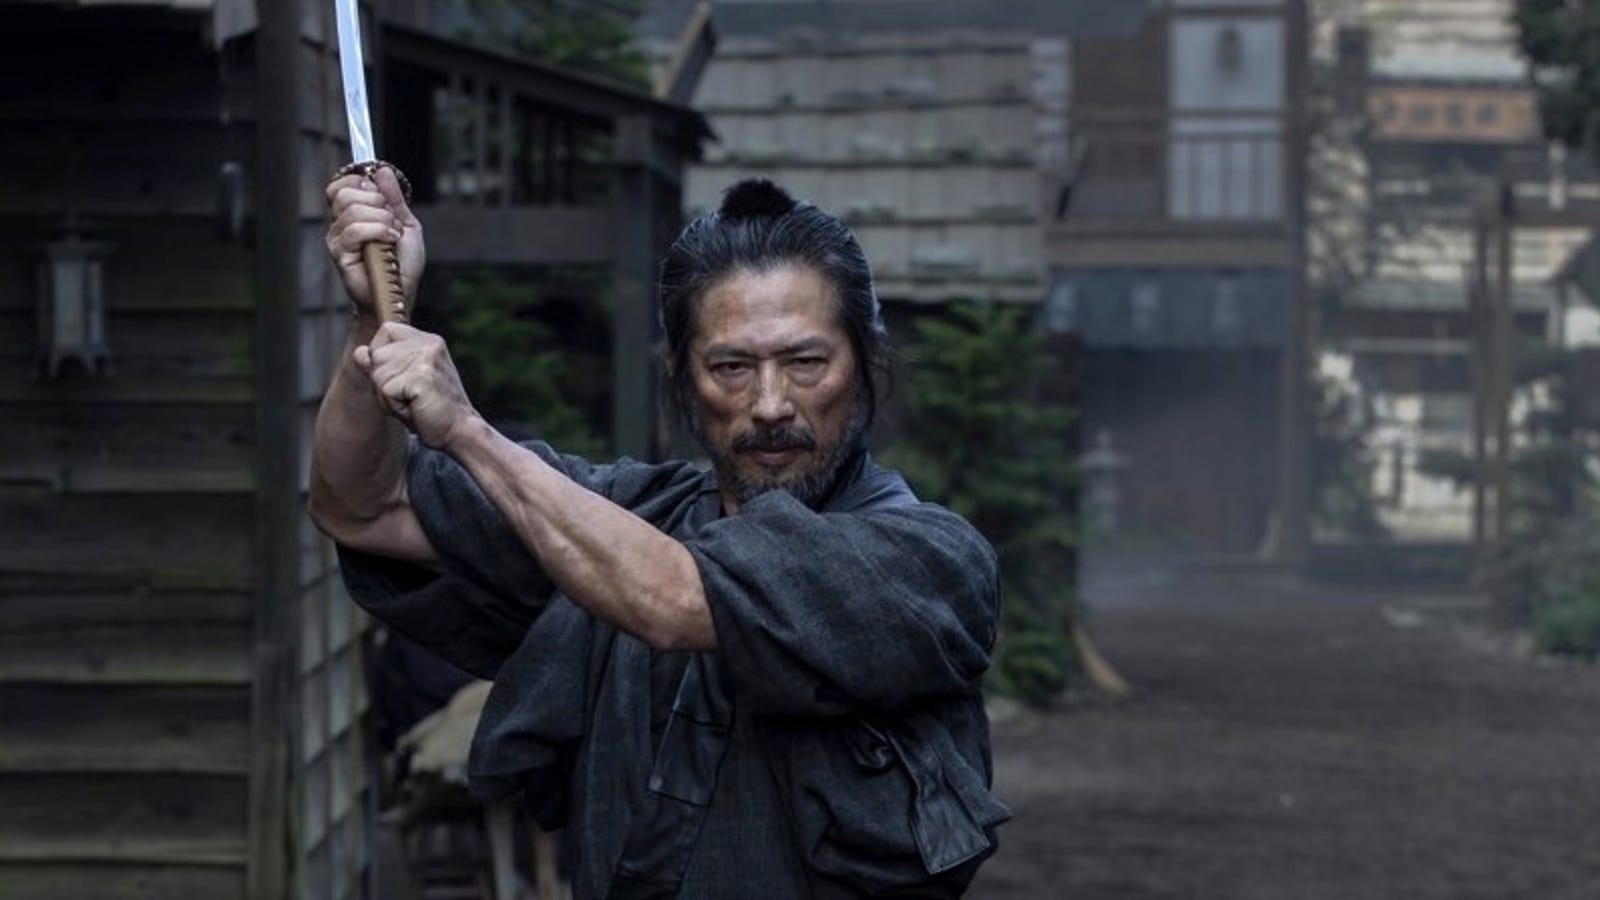 If You Want More of Westworld's Shōgun World, Watch These 7 Movies